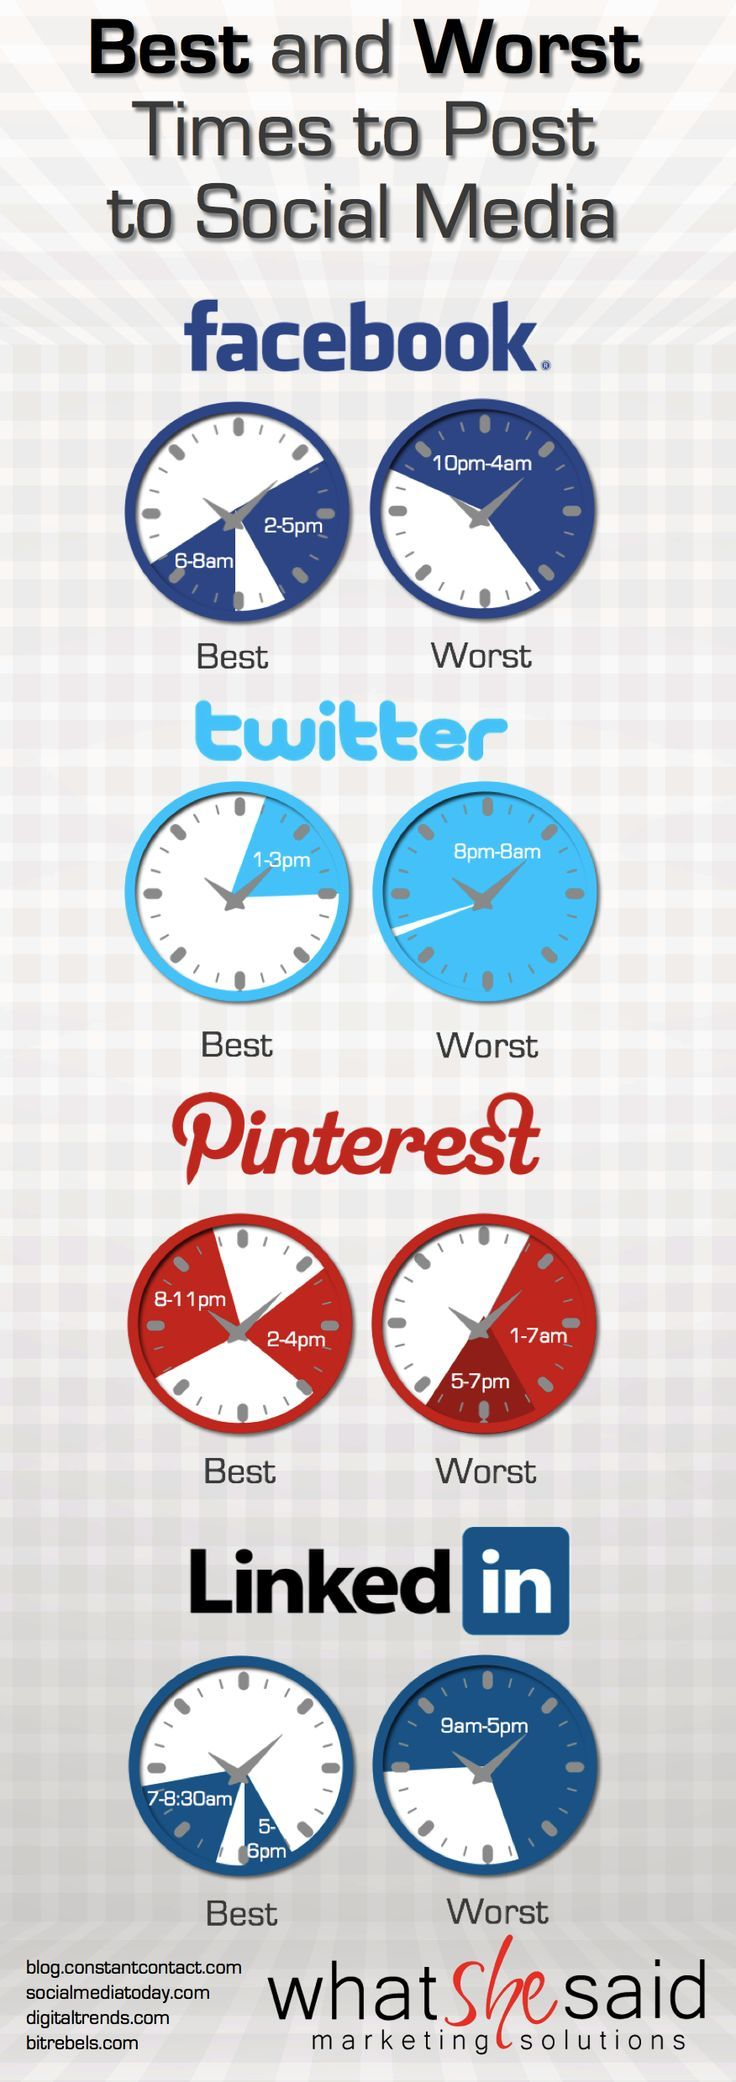 Best and Worst Times to Post to Social Media #infographic #socialmedia #besttime